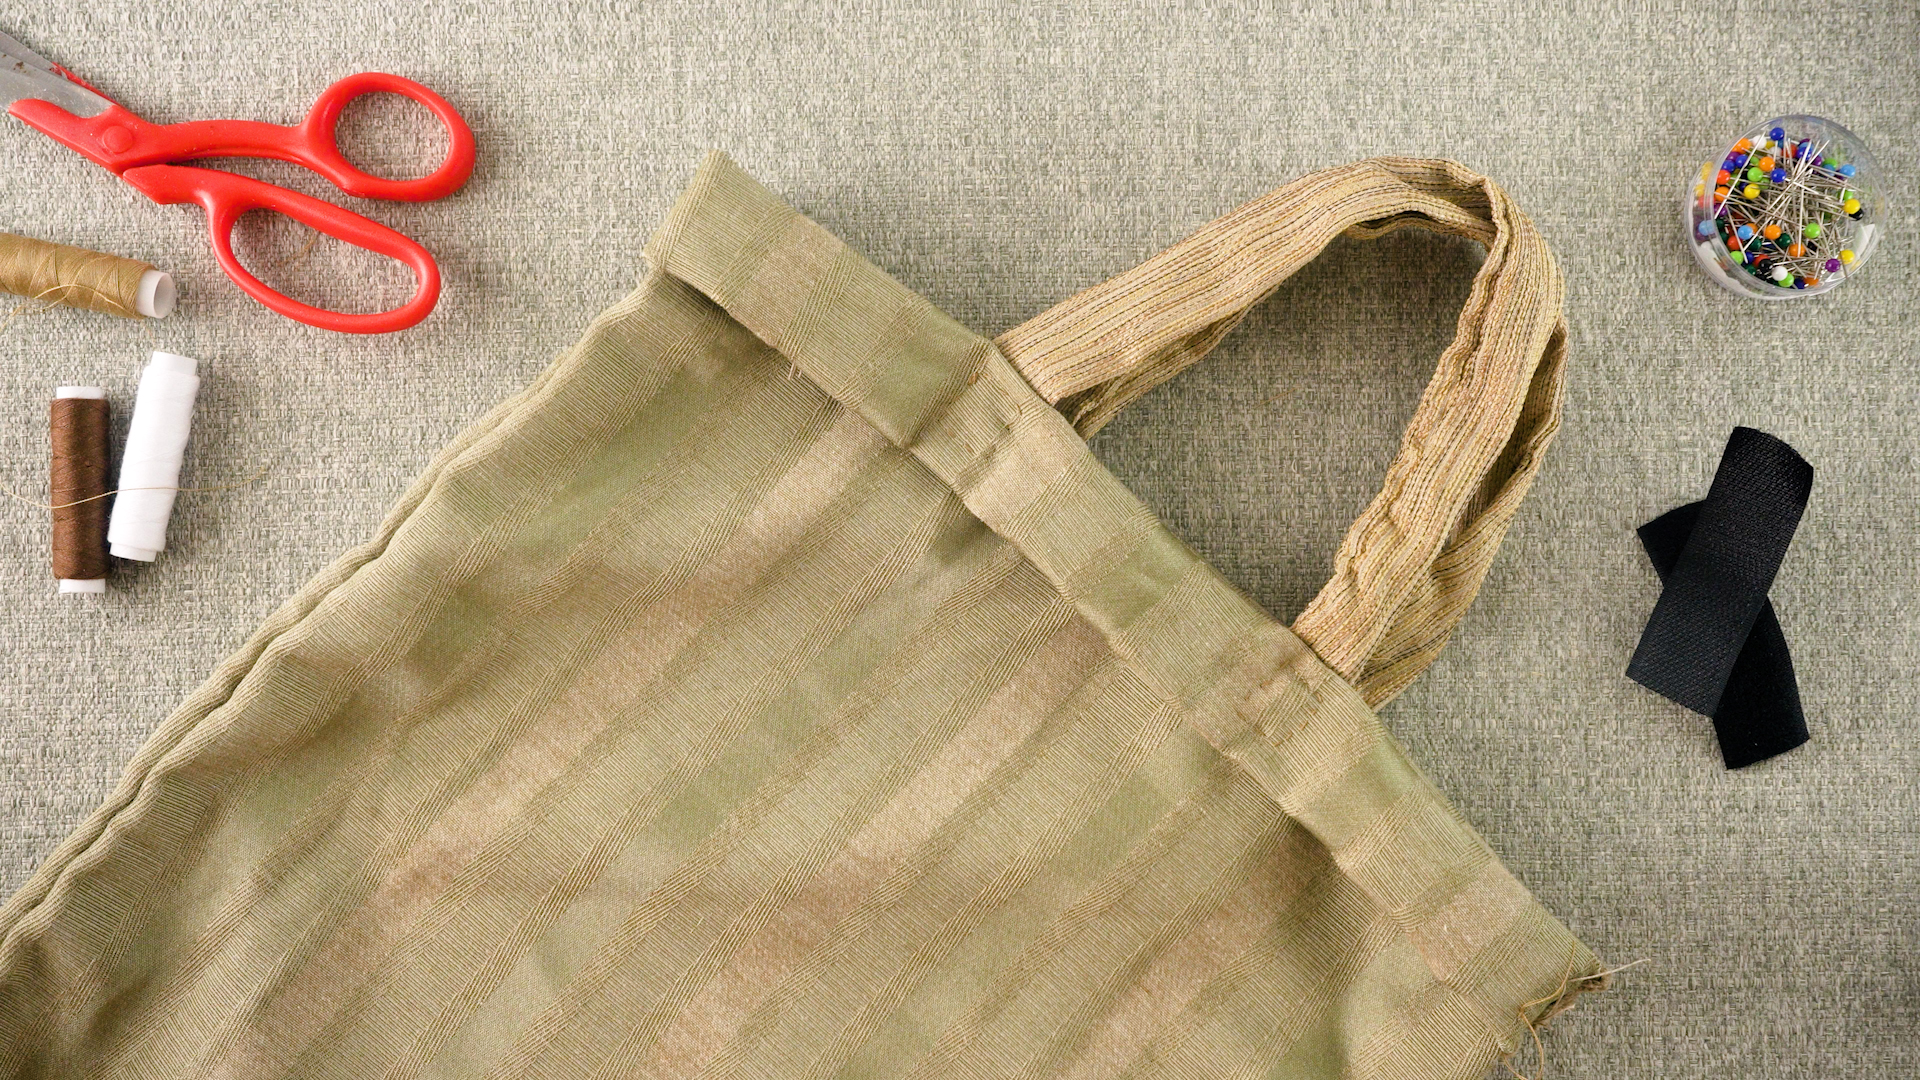 3 Ways To Make A Simple Cloth Bag Wikihow